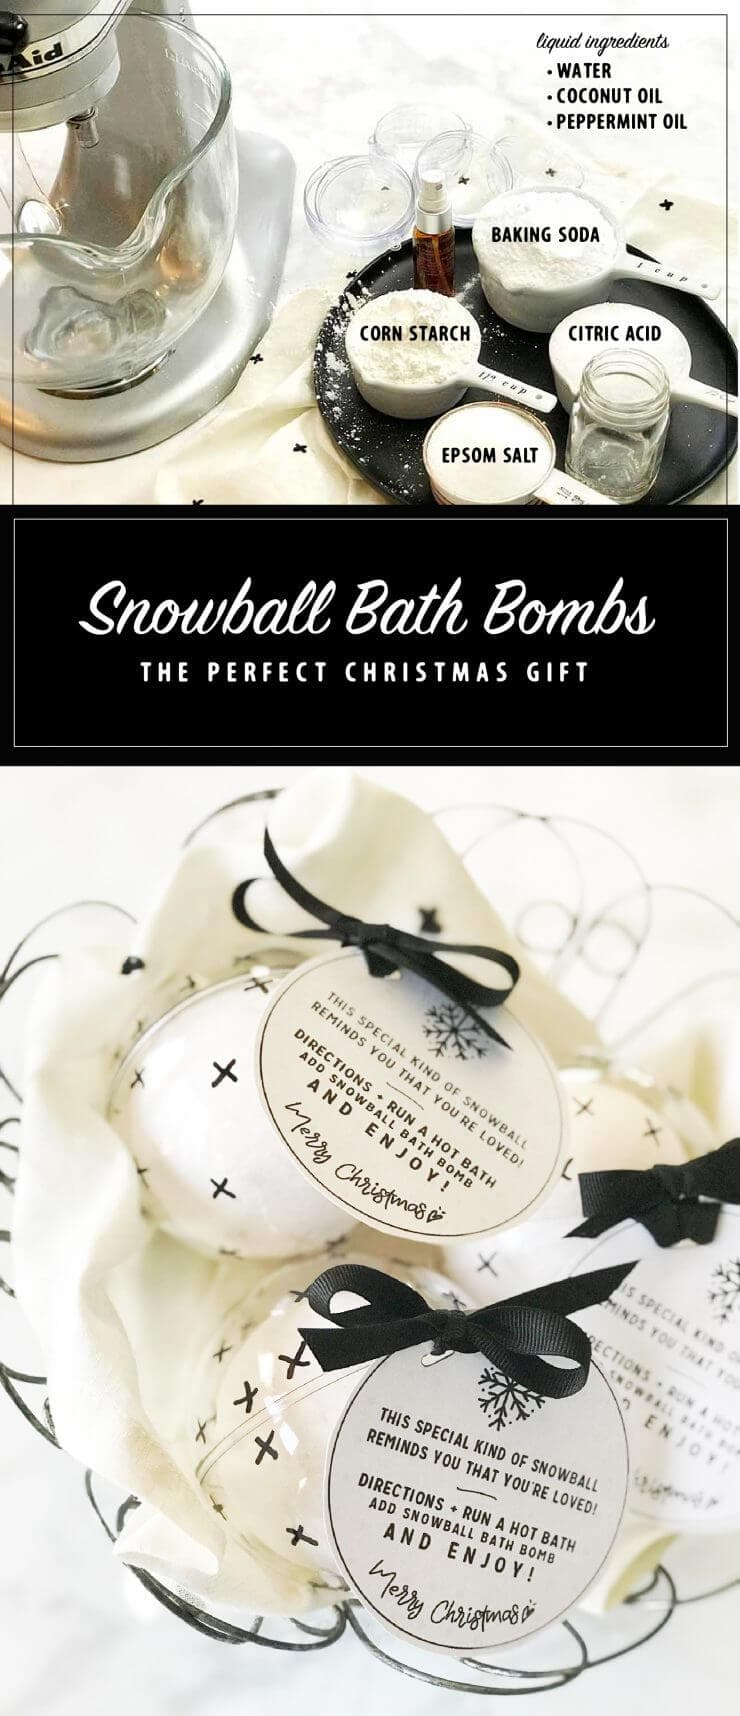 Looking for a simple handmade Christmas gift this year? These easy to make Snowball Bath Bombs will make you the hit of the neighborhood, school or office!